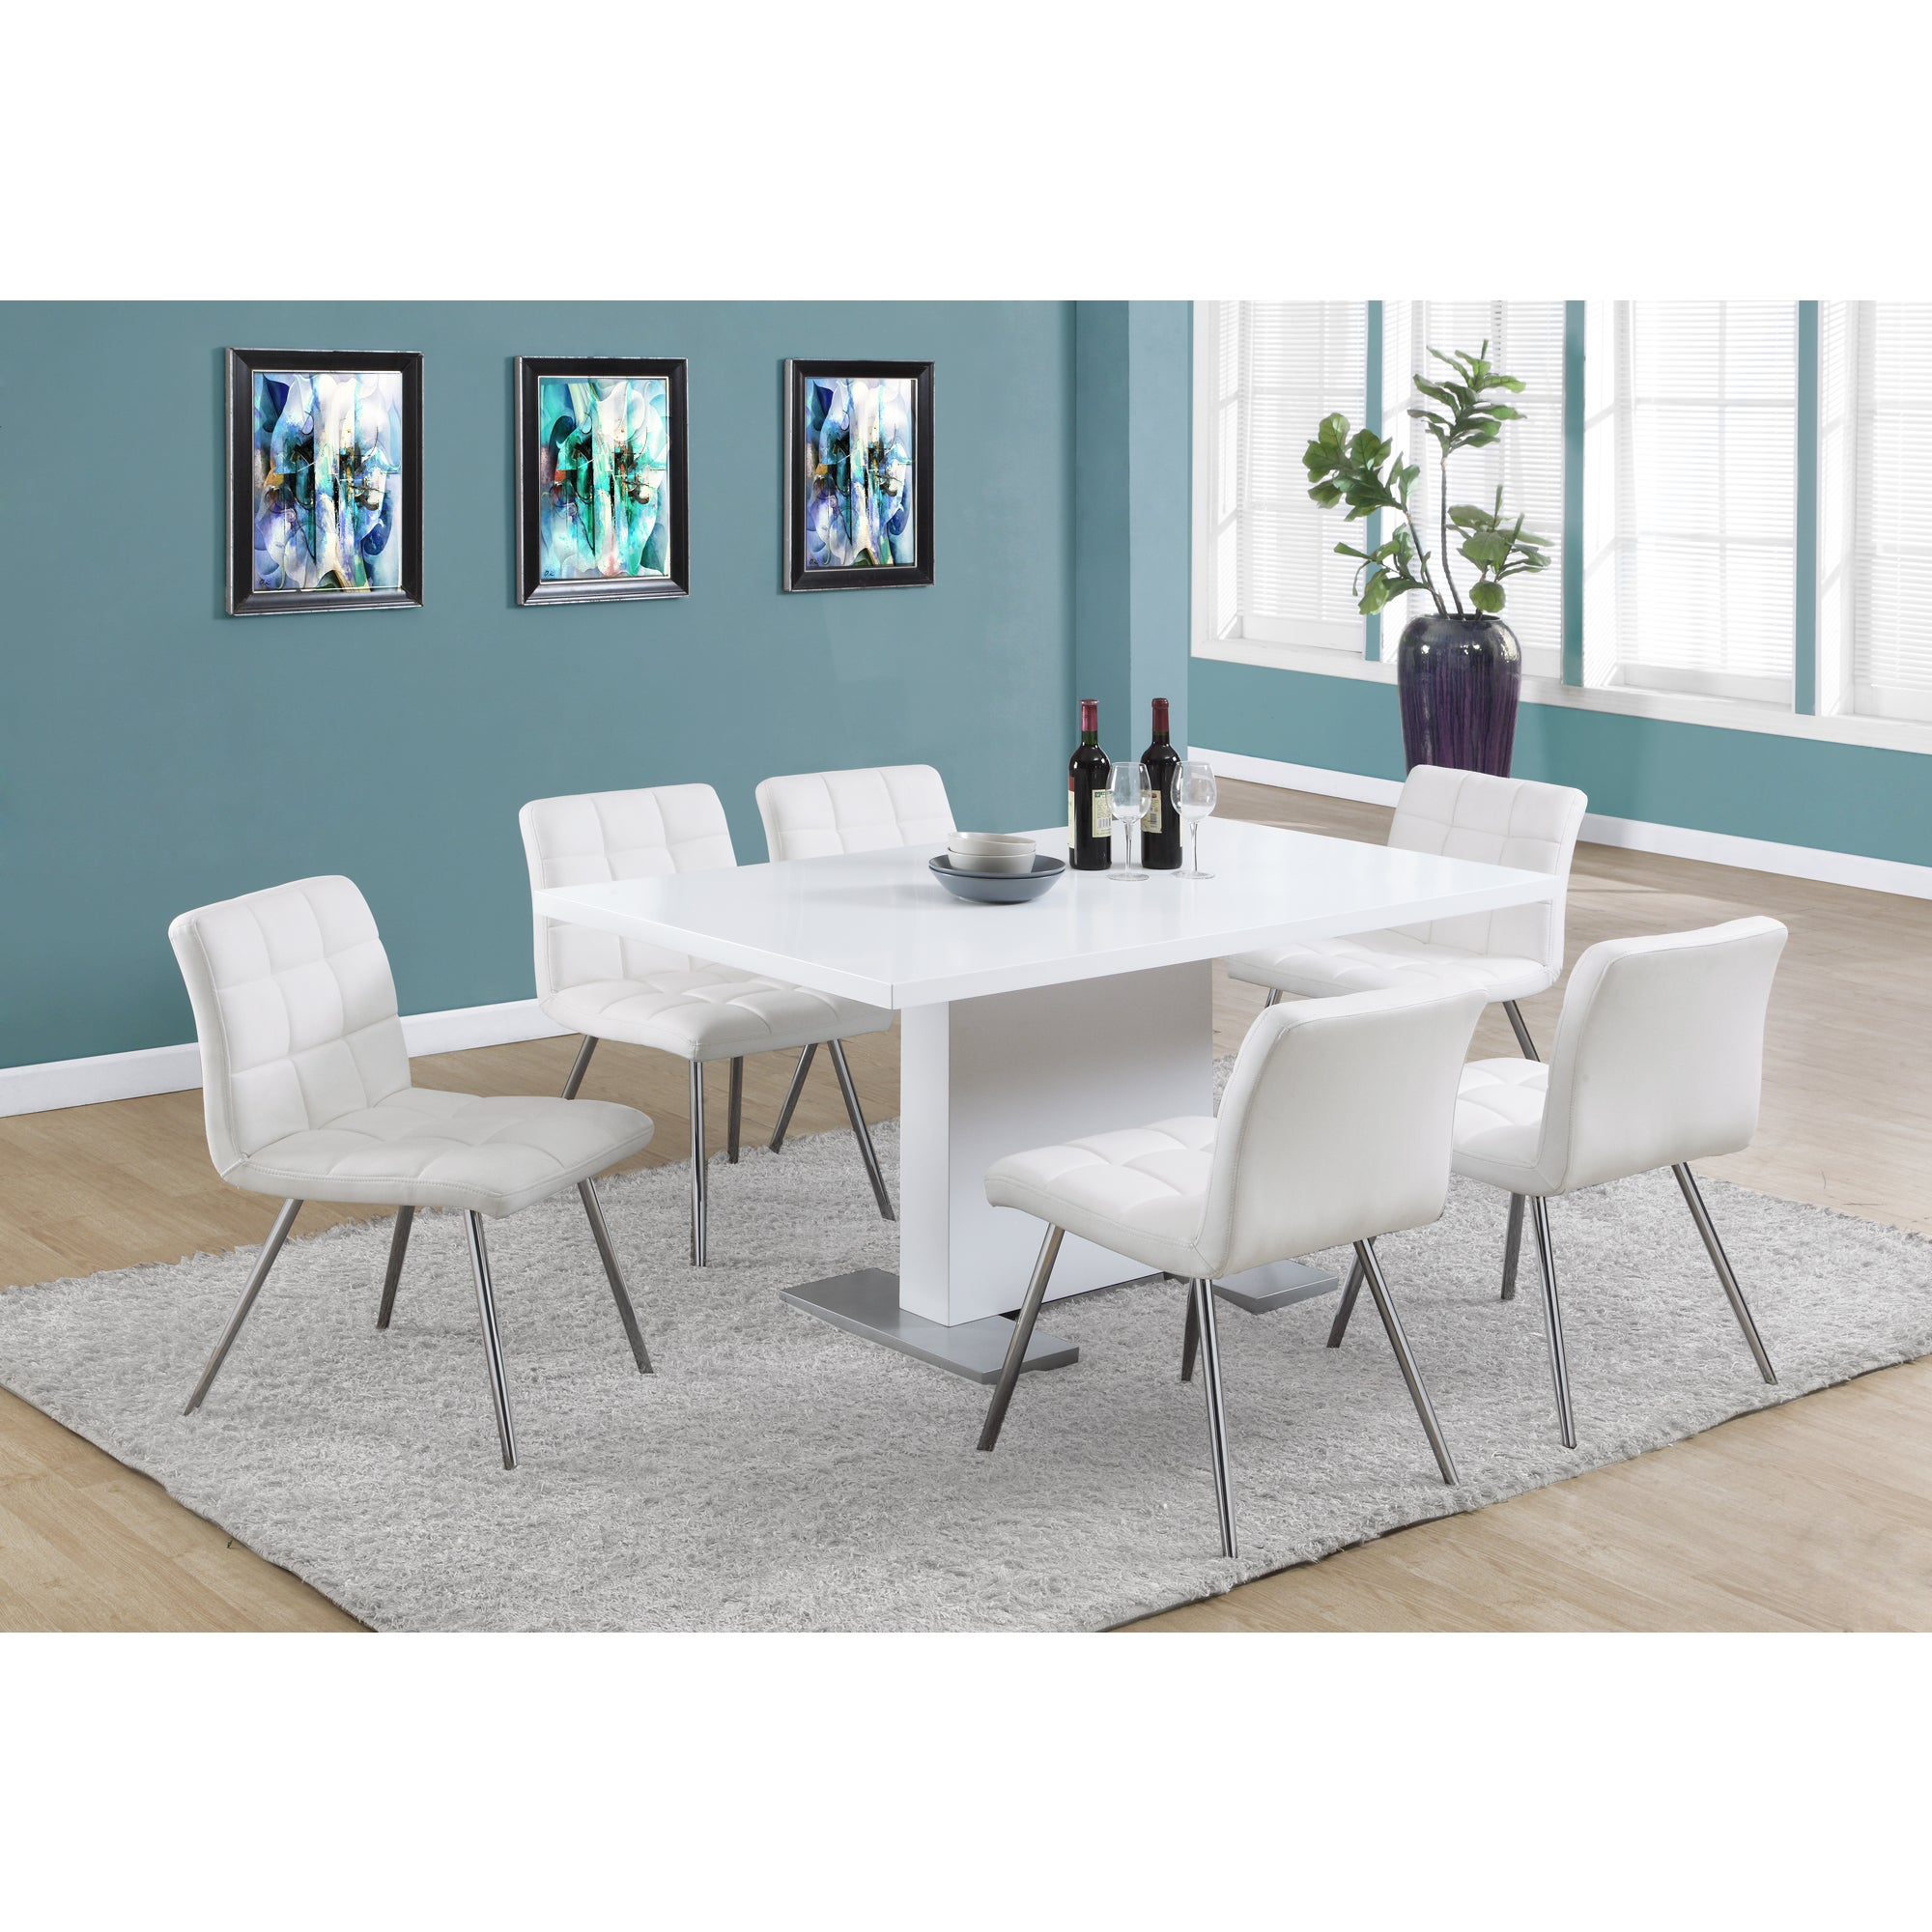 Shop White Faux Leather Chrome Metal Dining Chair (Set of 2) - Free ...